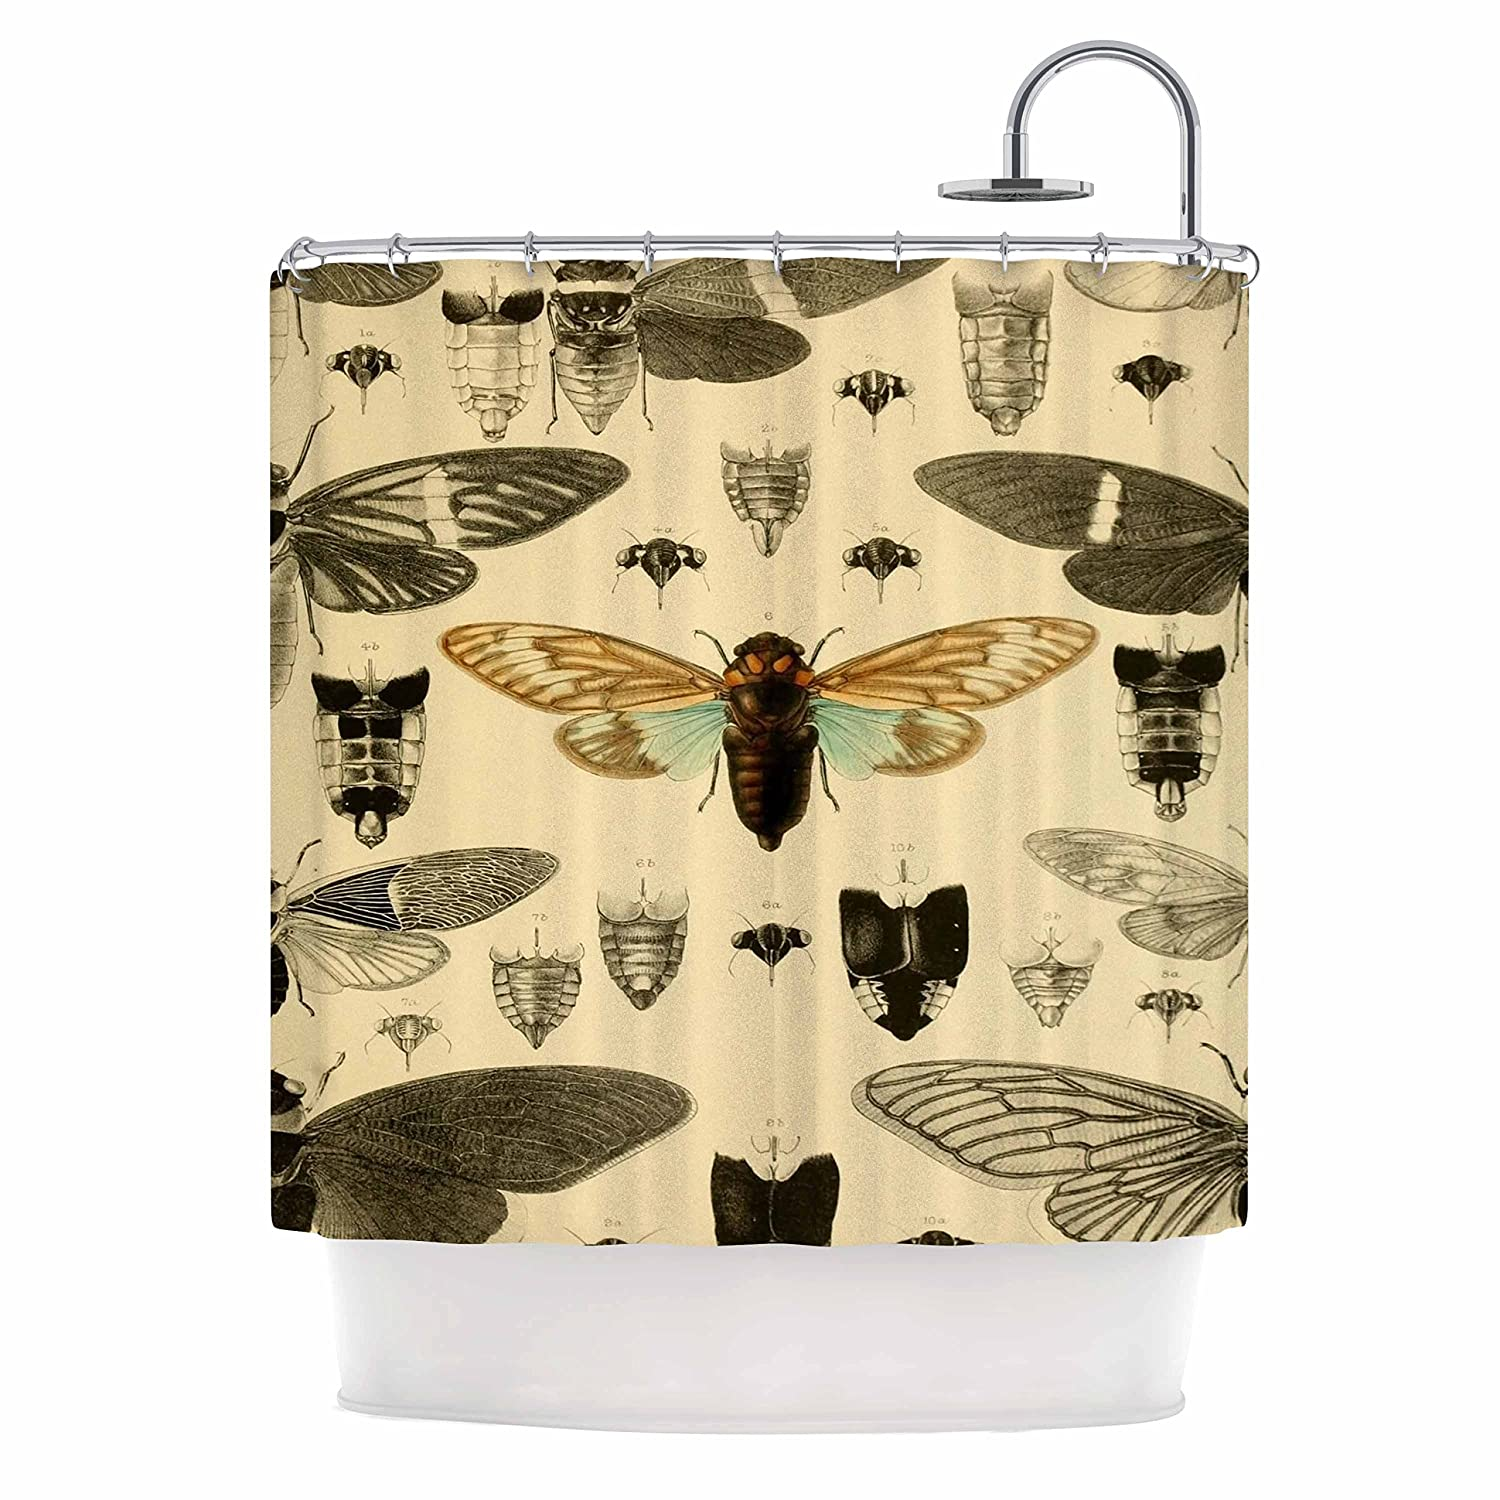 Kess InHouse Suzanne Carter Vintage Cicada Bugs Pattern Shower Curtain 69 by 70-Inch